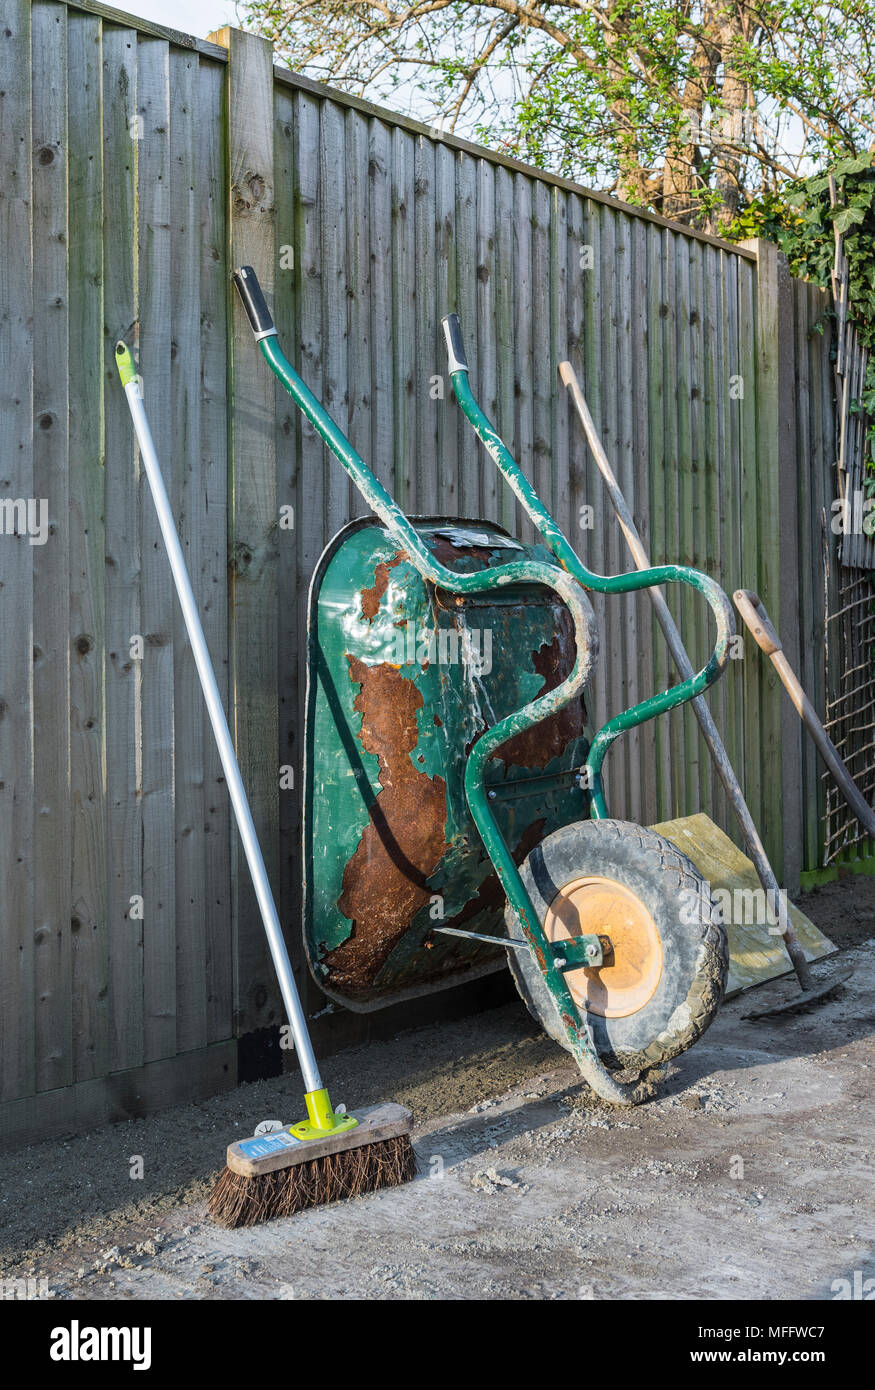 Wheelbarrow and other garden tools leaning on a fence at the end of a work day during construction work in a back garden or back yard. - Stock Image